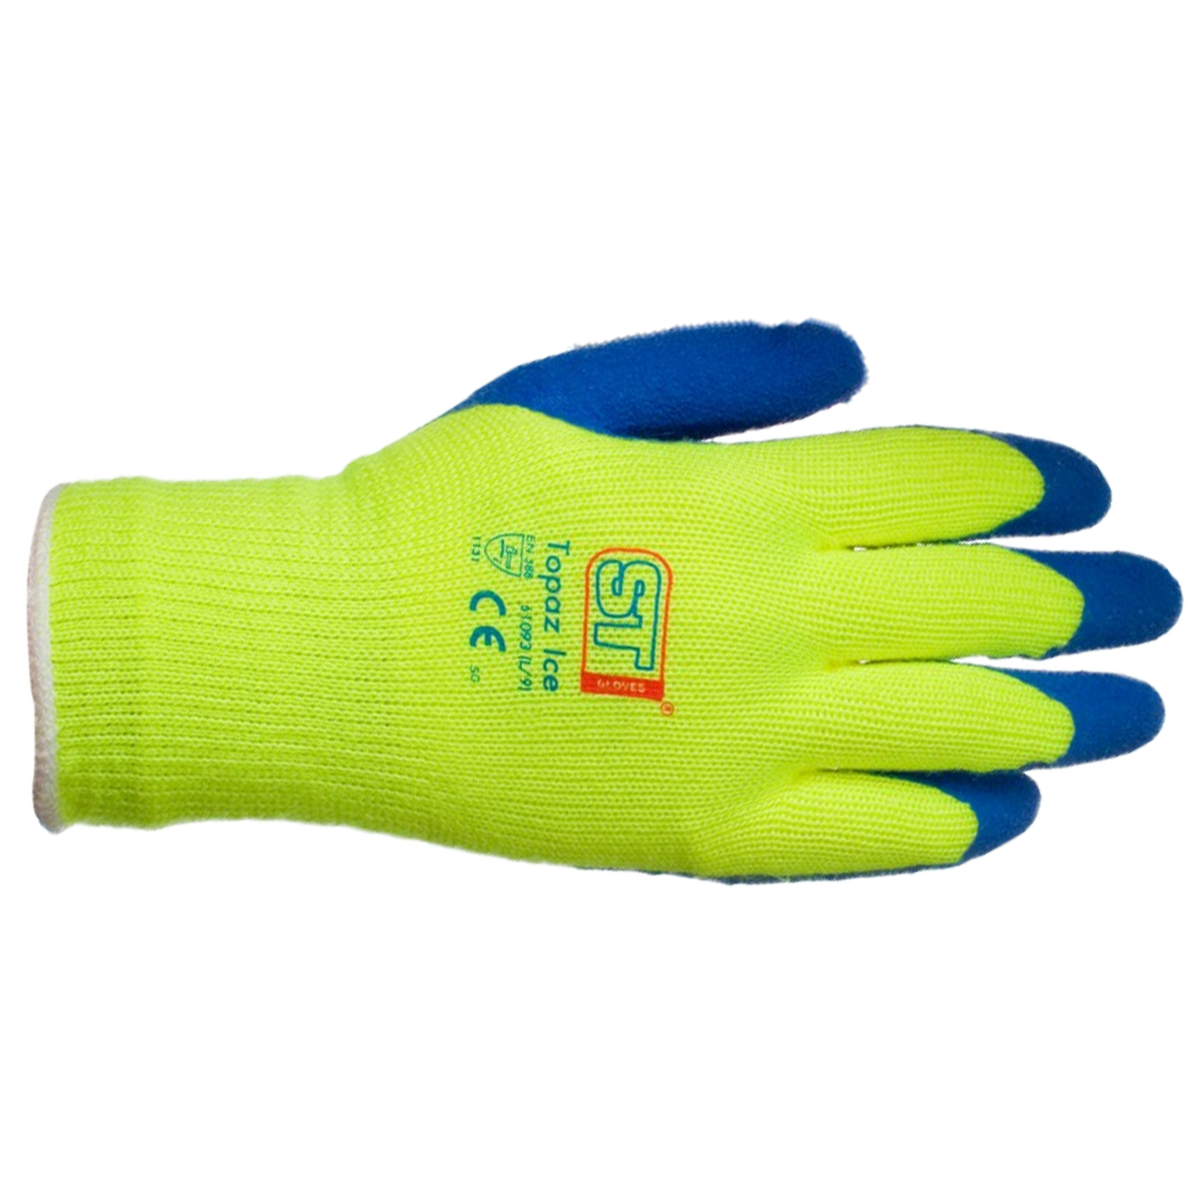 KEEP YOUR HANDS WARMER FOR LONGER WITH A PAIR OF BUILDERS THERMAL GLOVES